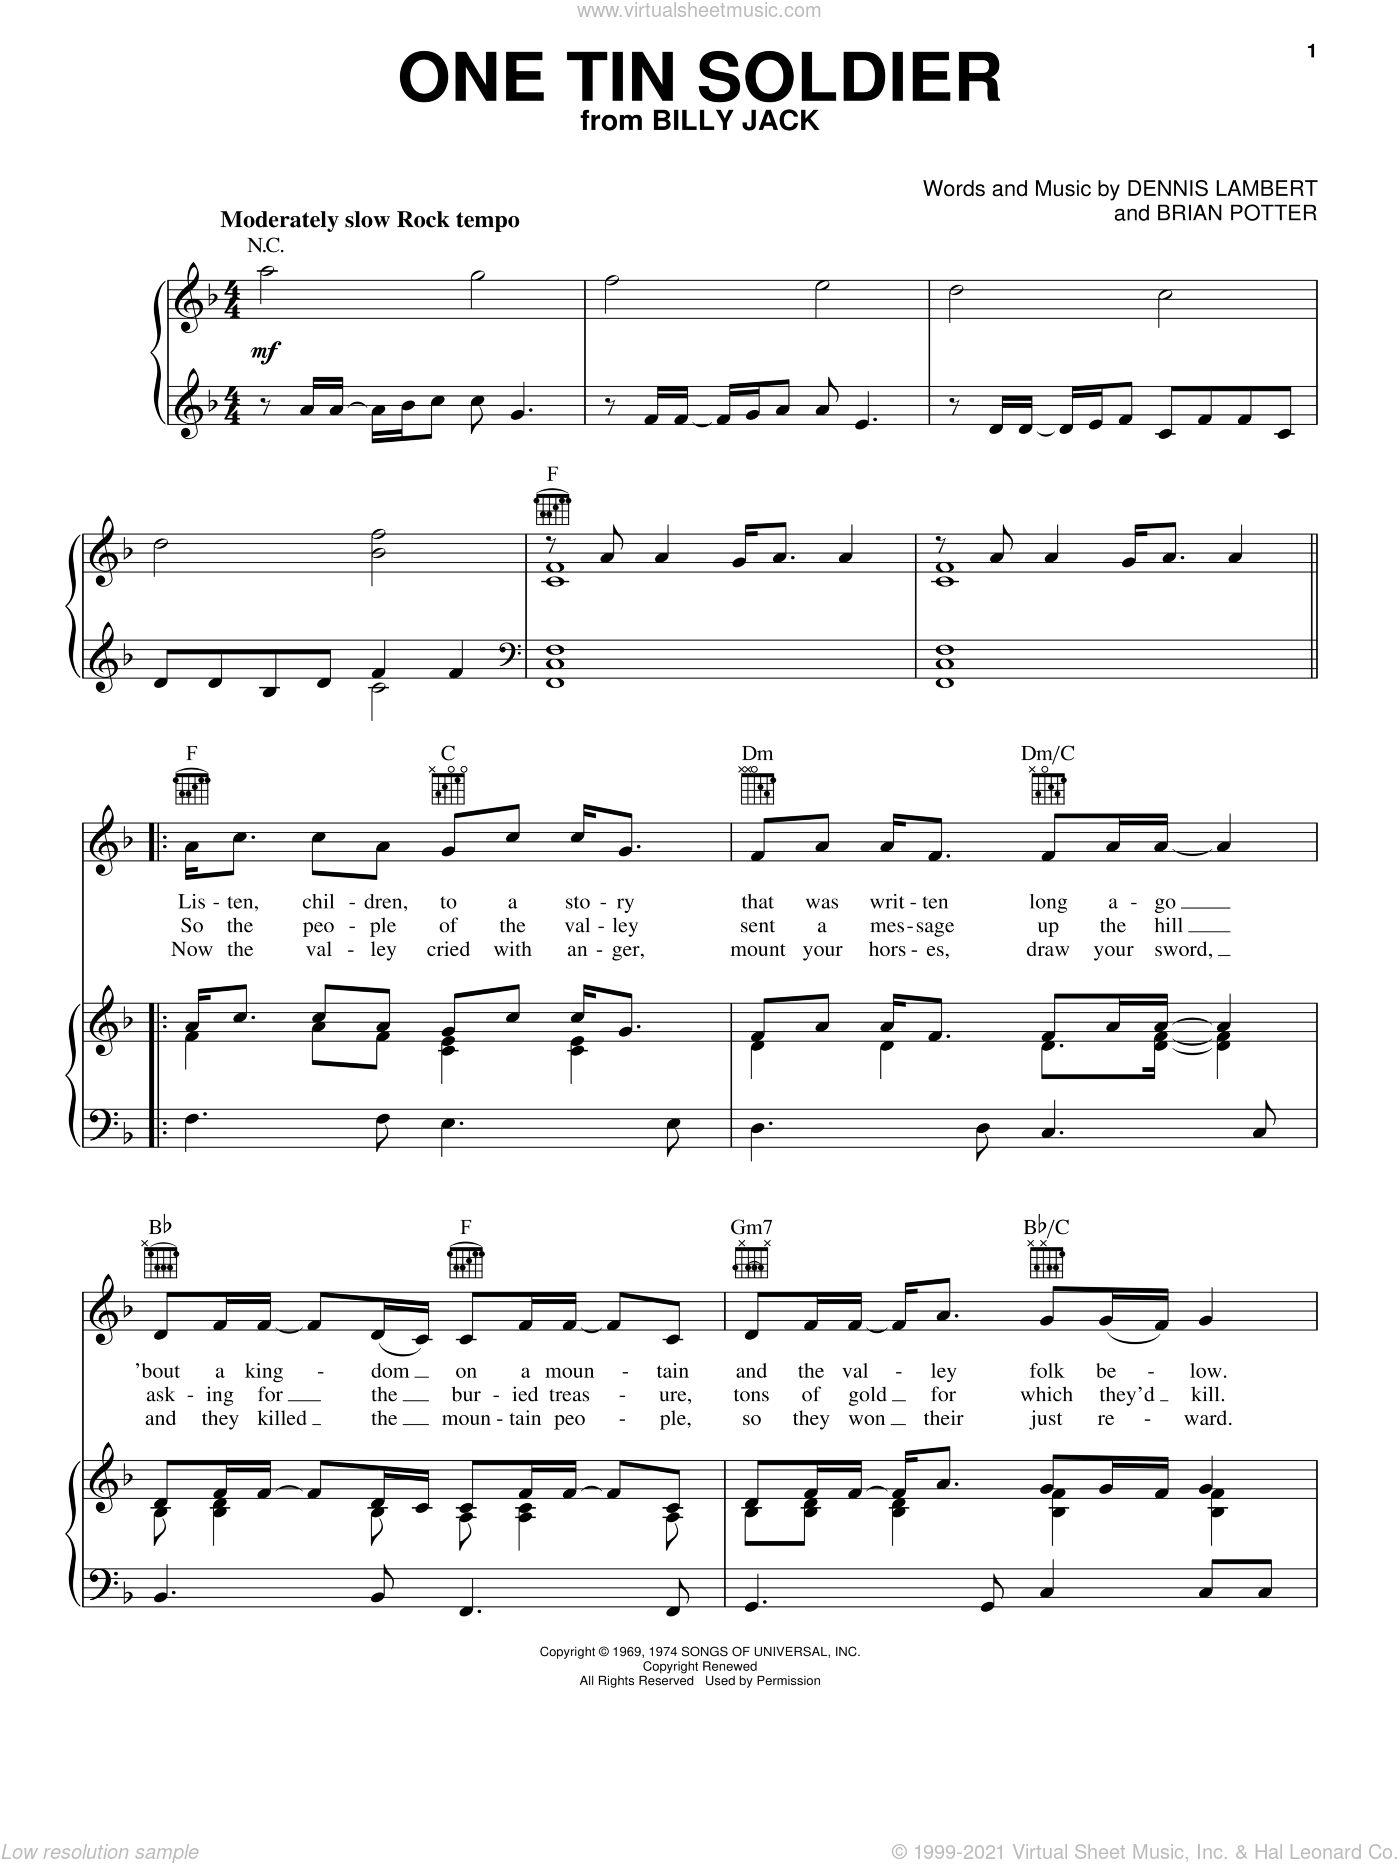 One Tin Soldier sheet music for voice, piano or guitar by Coven, Brian Potter and Dennis Lambert, intermediate skill level